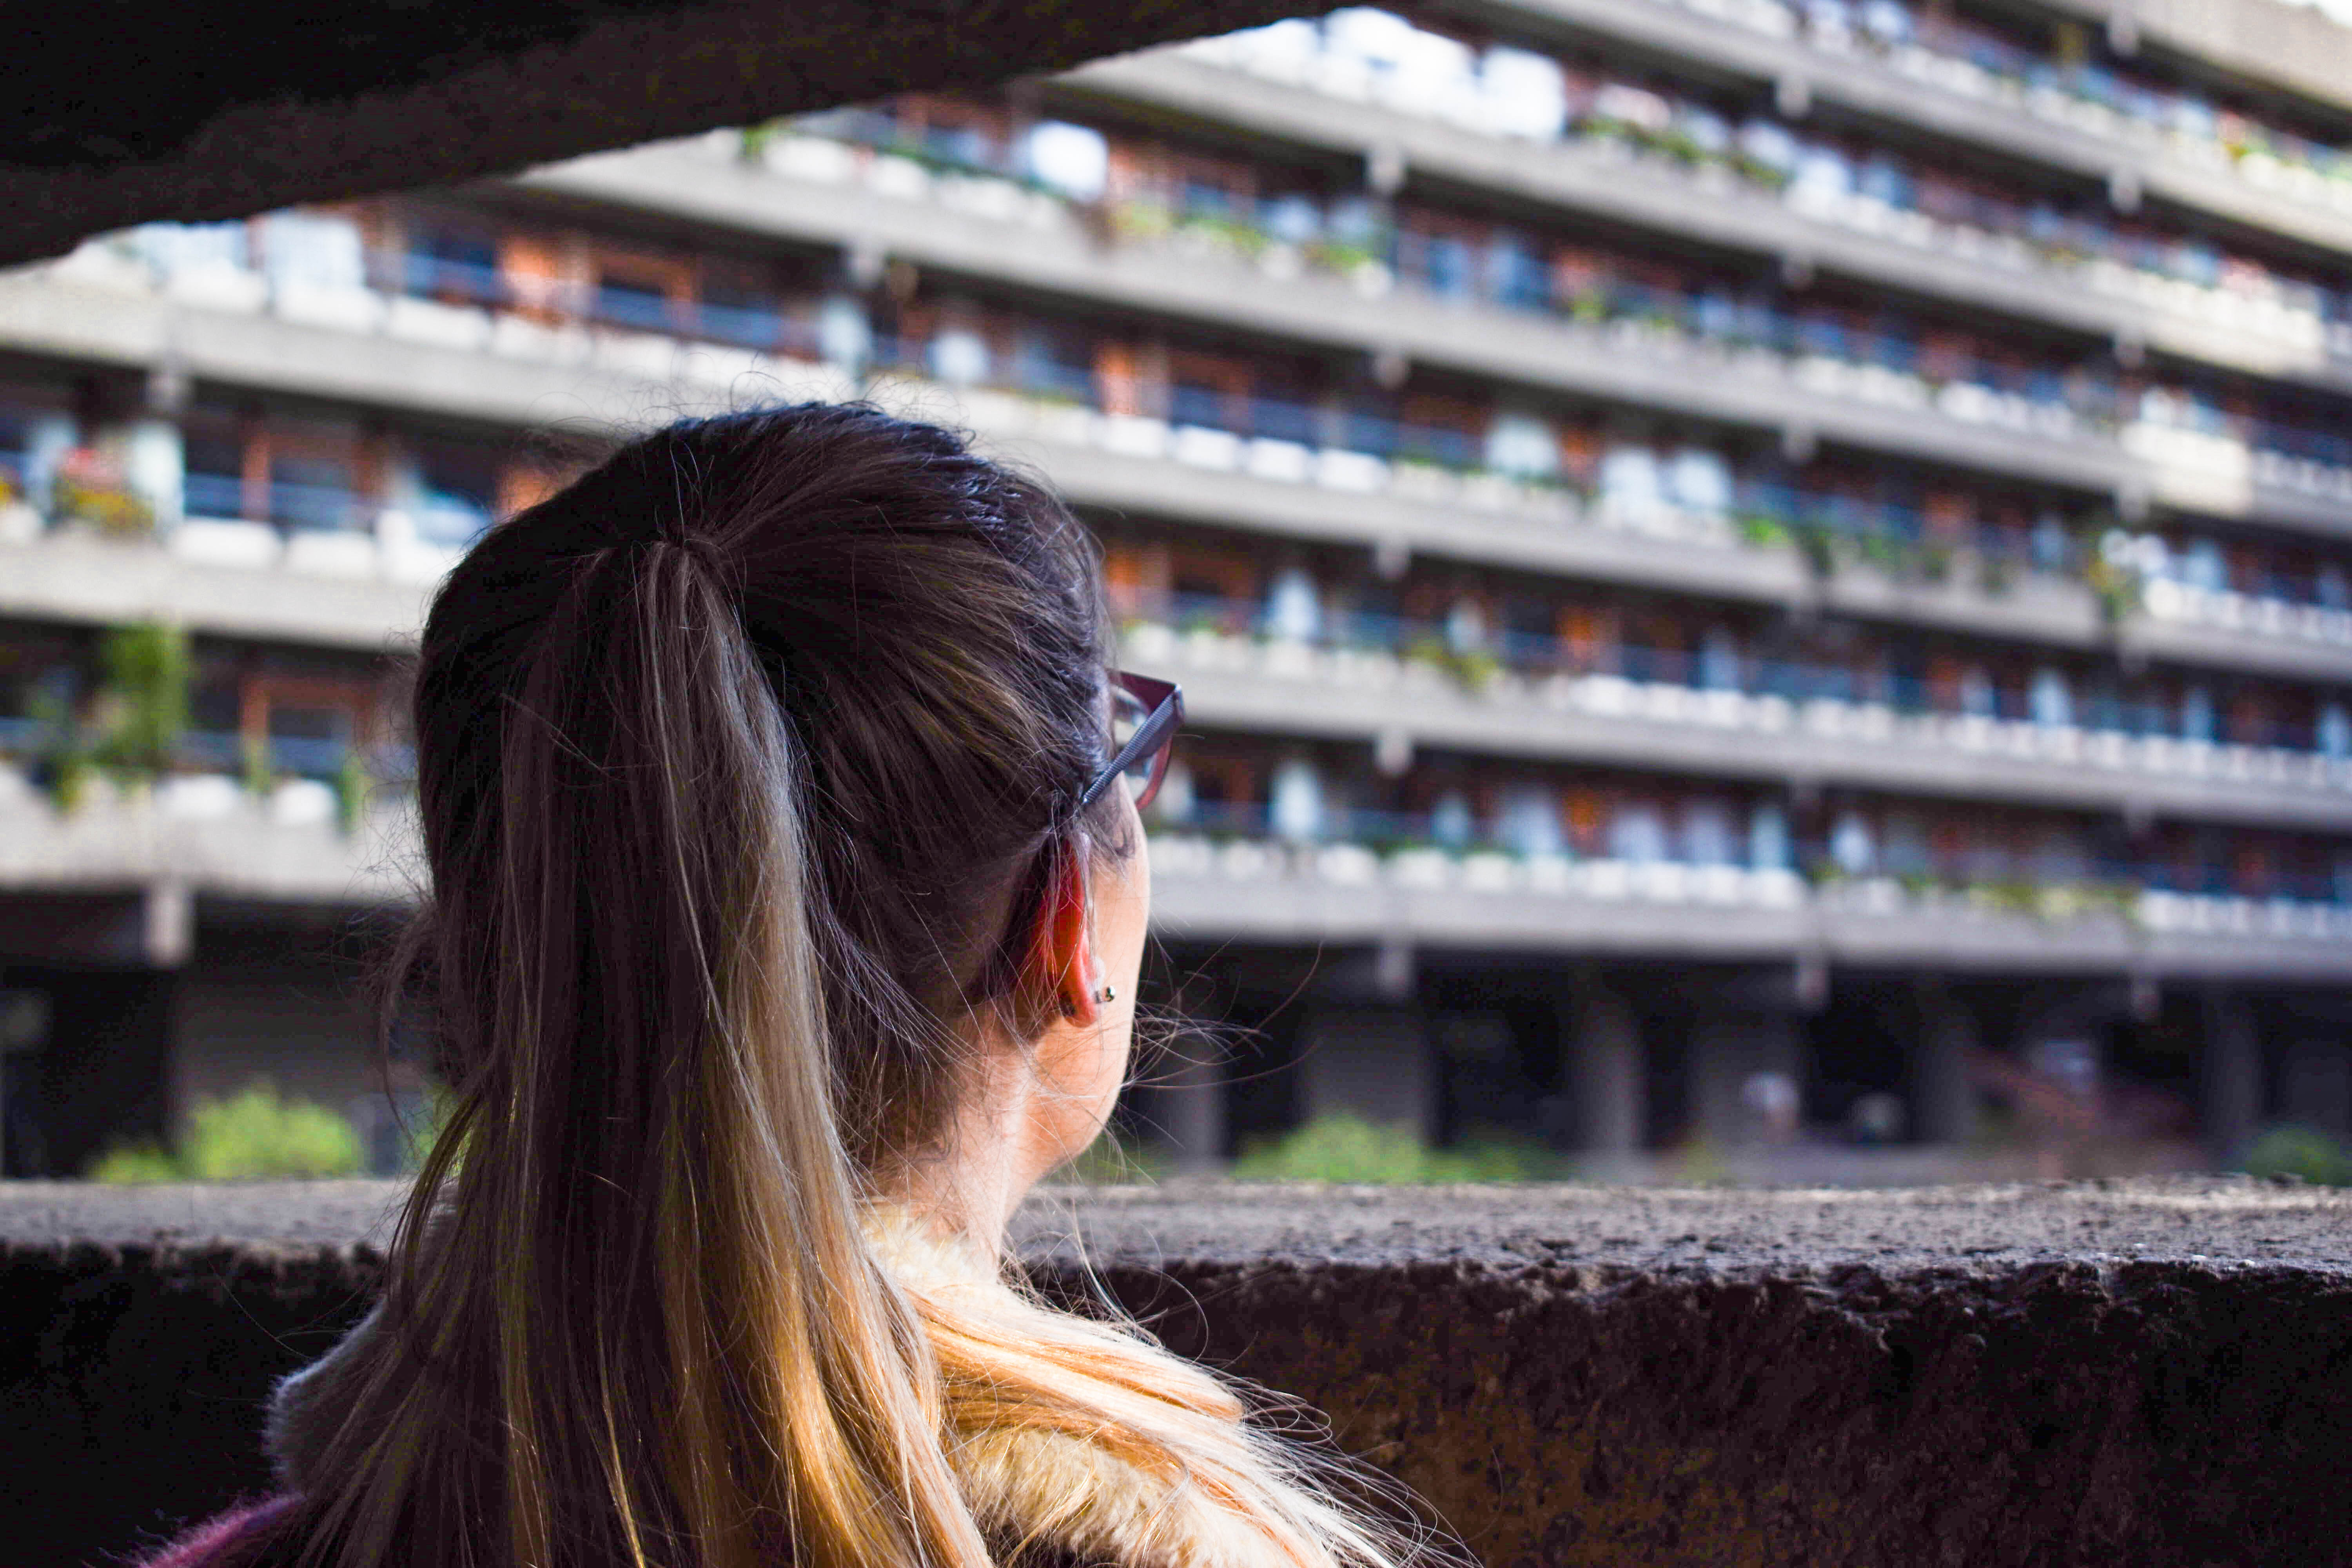 First look at the Barbican Estate over a wall